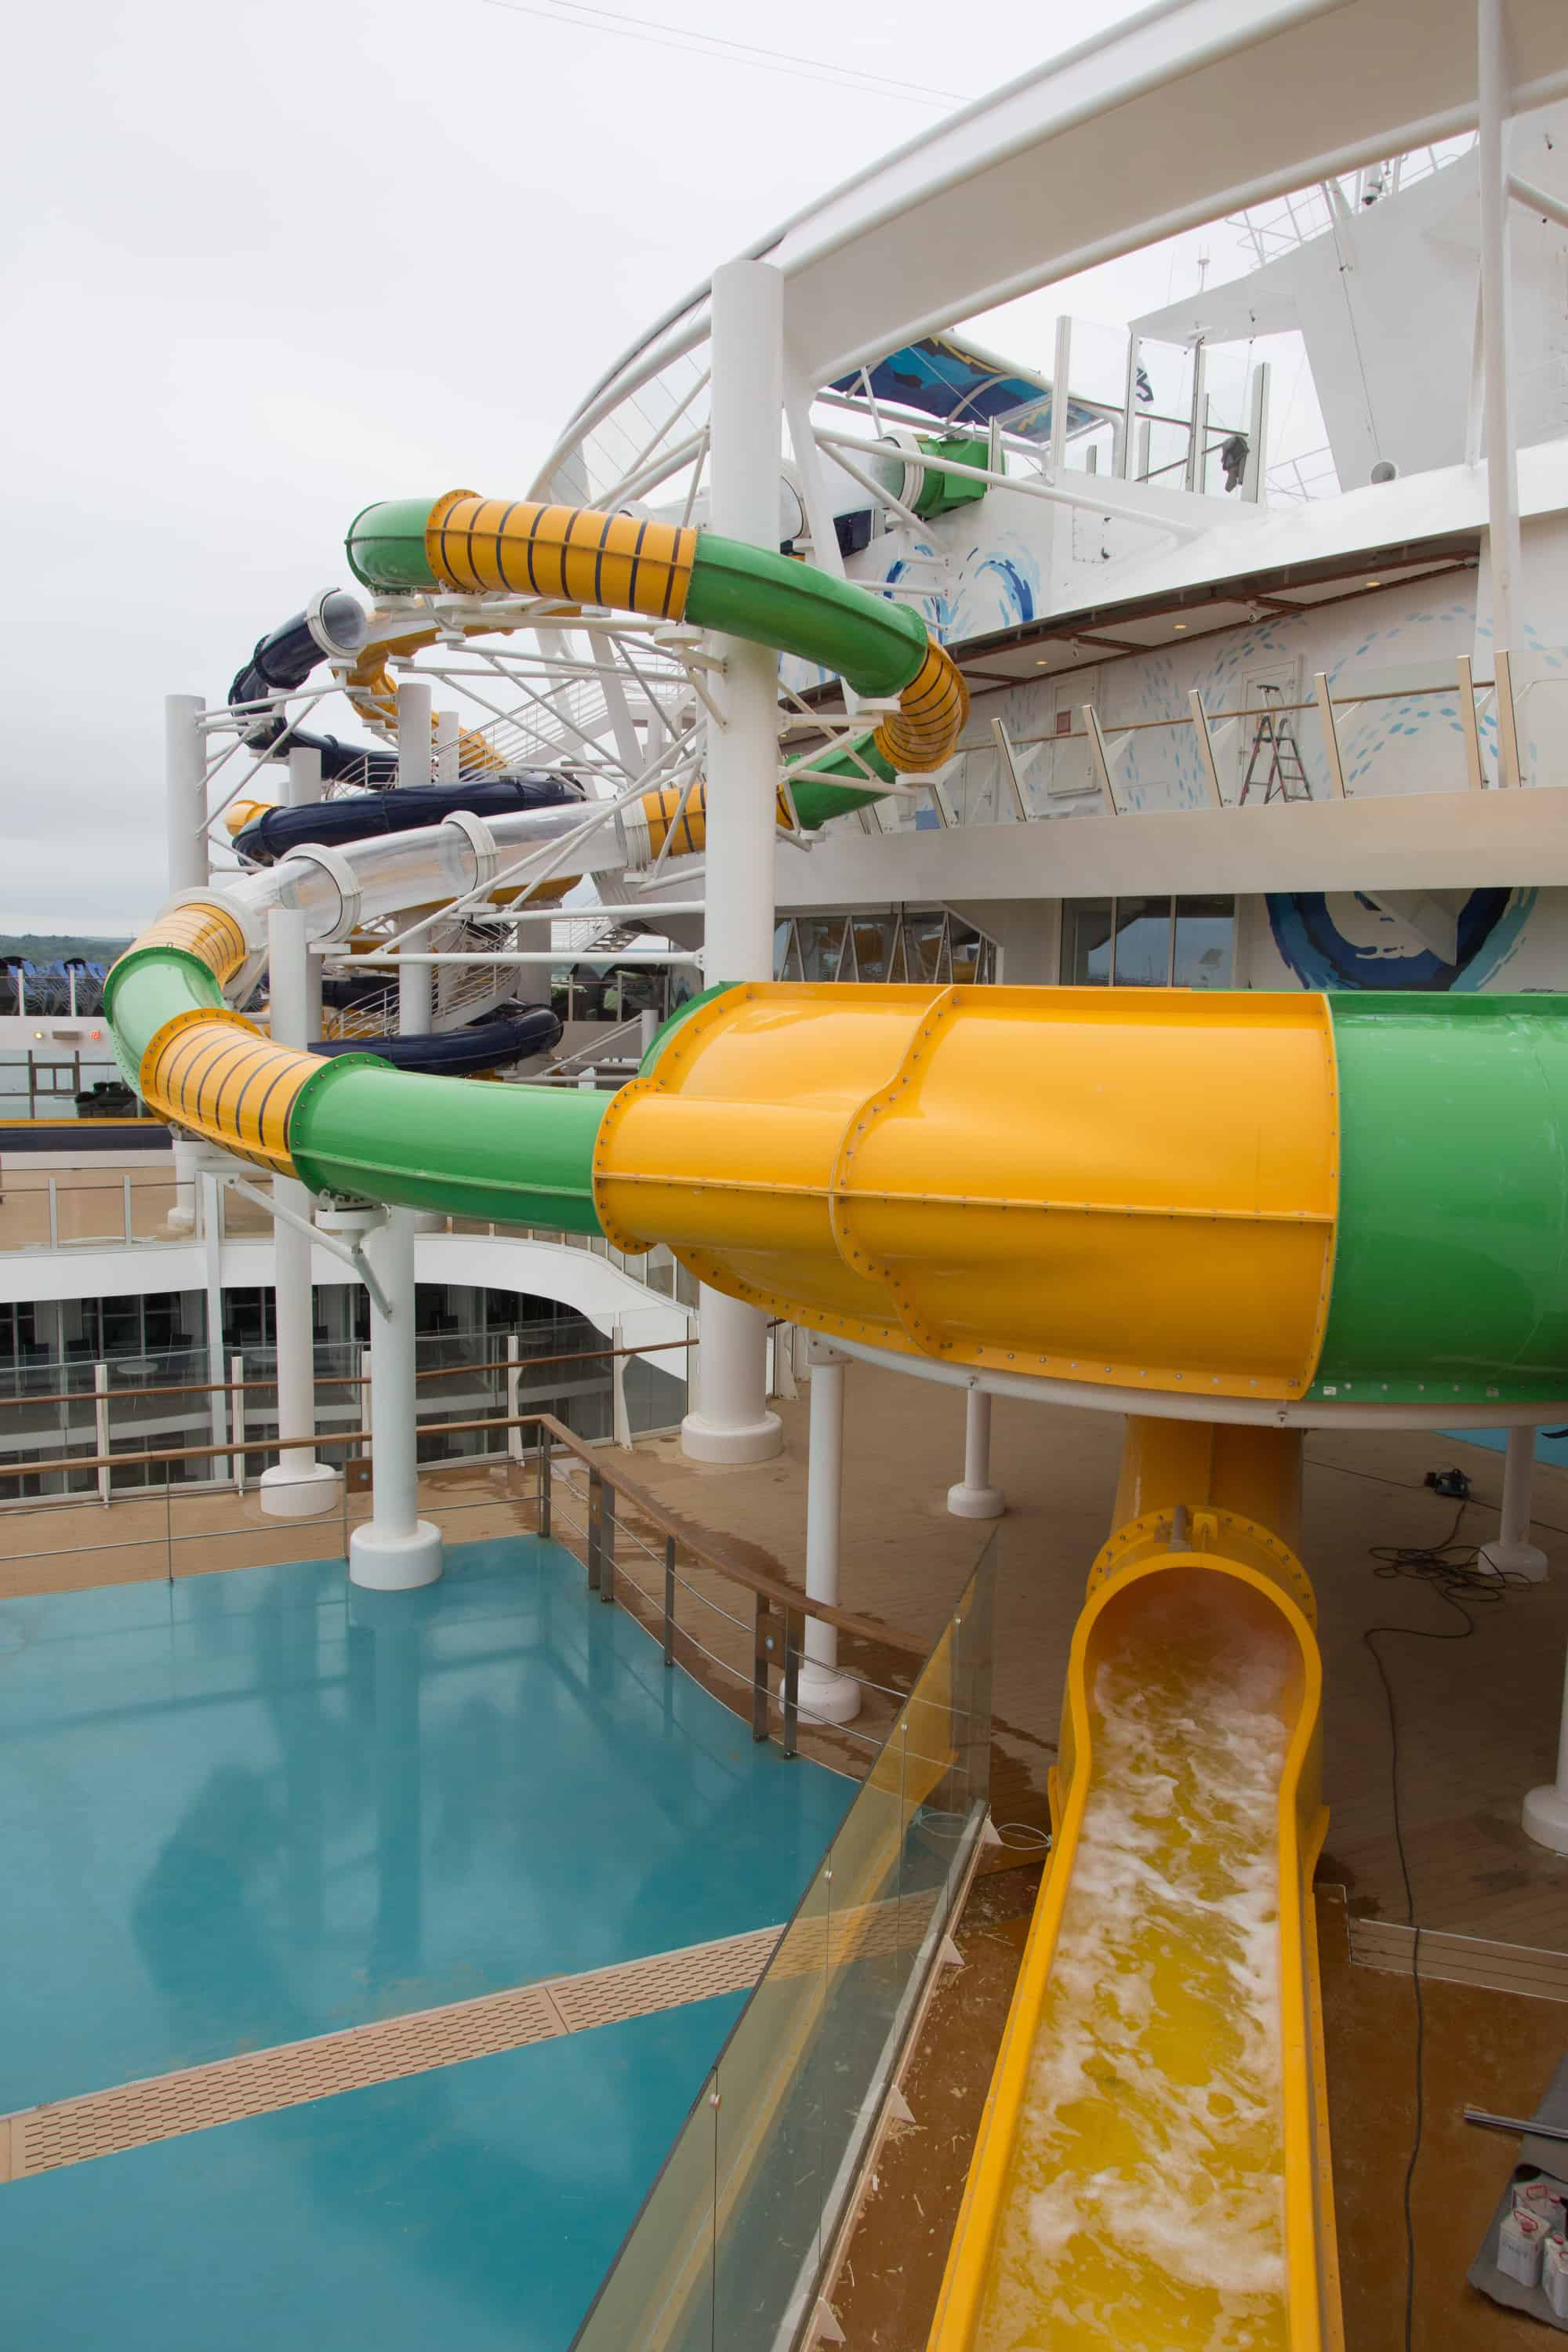 Royal Caribbean International's Harmony of the Seas, the world's largest and newest cruise ship, previews in Southampton, UK. General views of the ship.